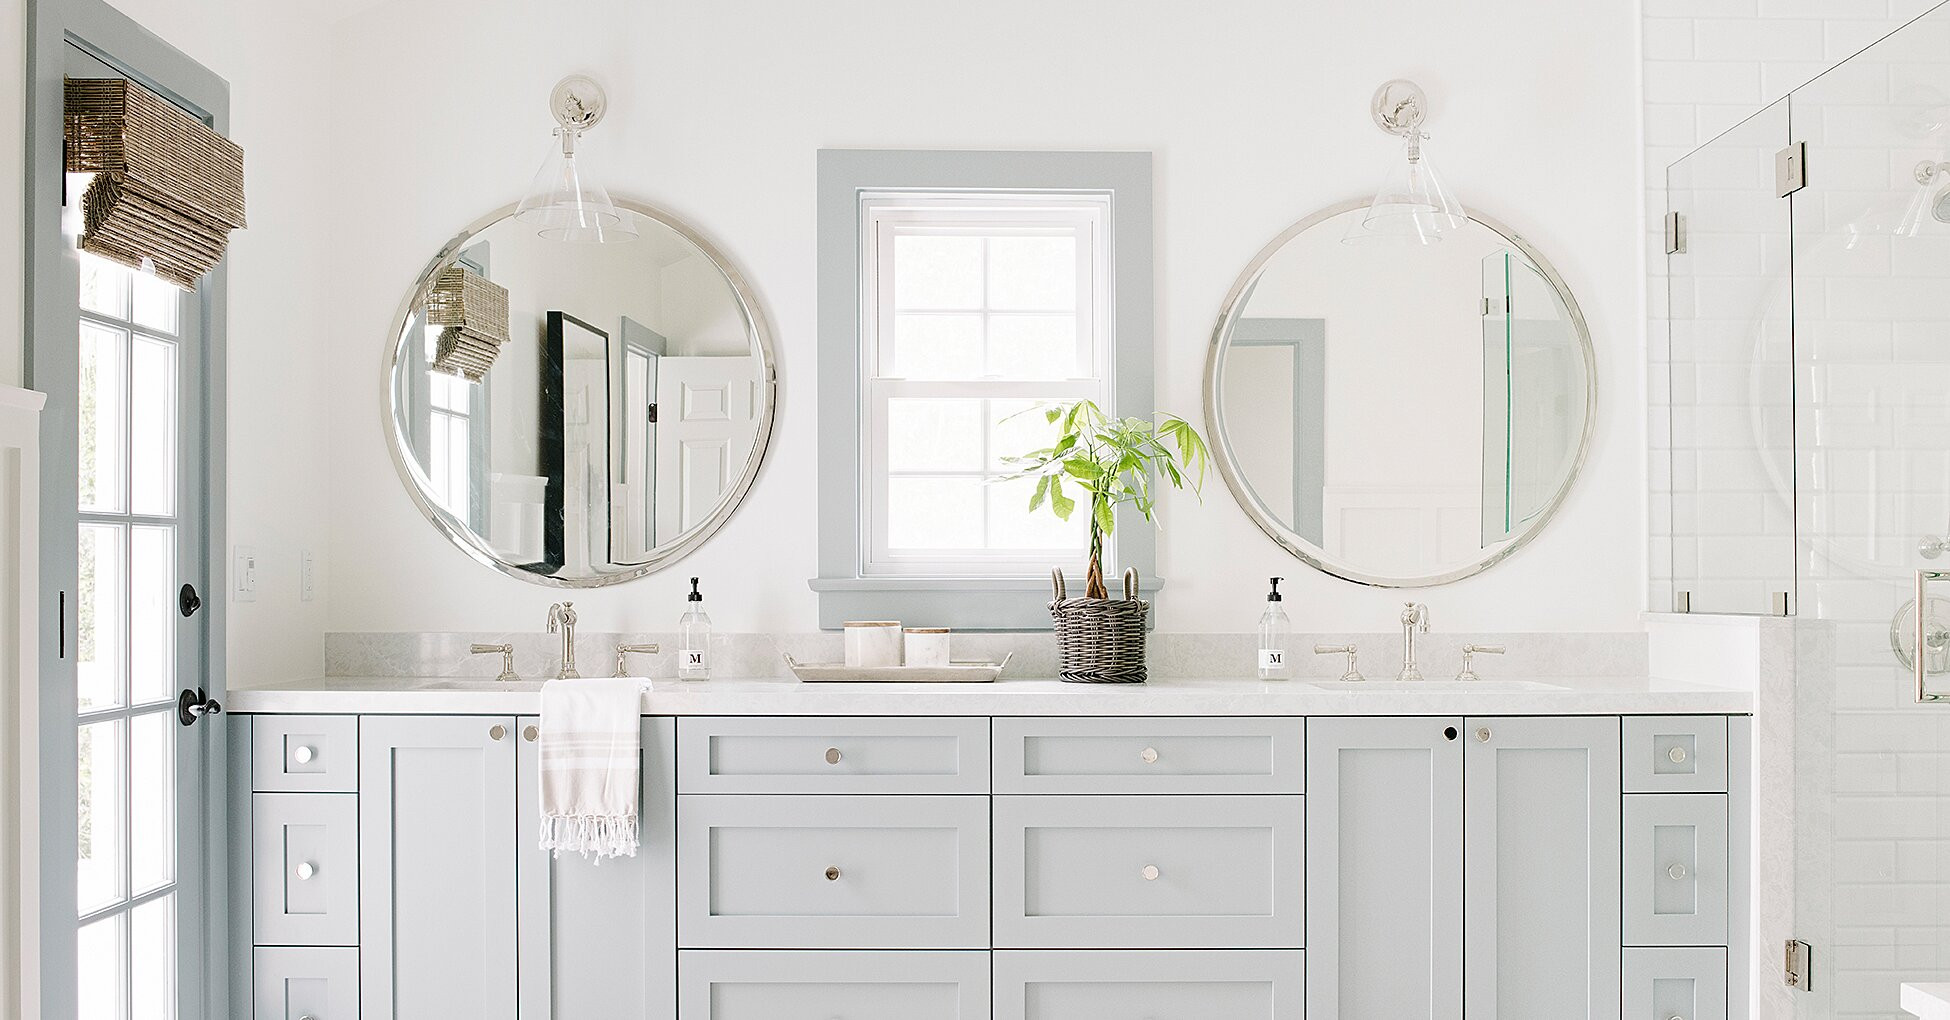 Best Bathroom Colors 2020 New these are the Most Popular Bathroom Paint Colors for 2020